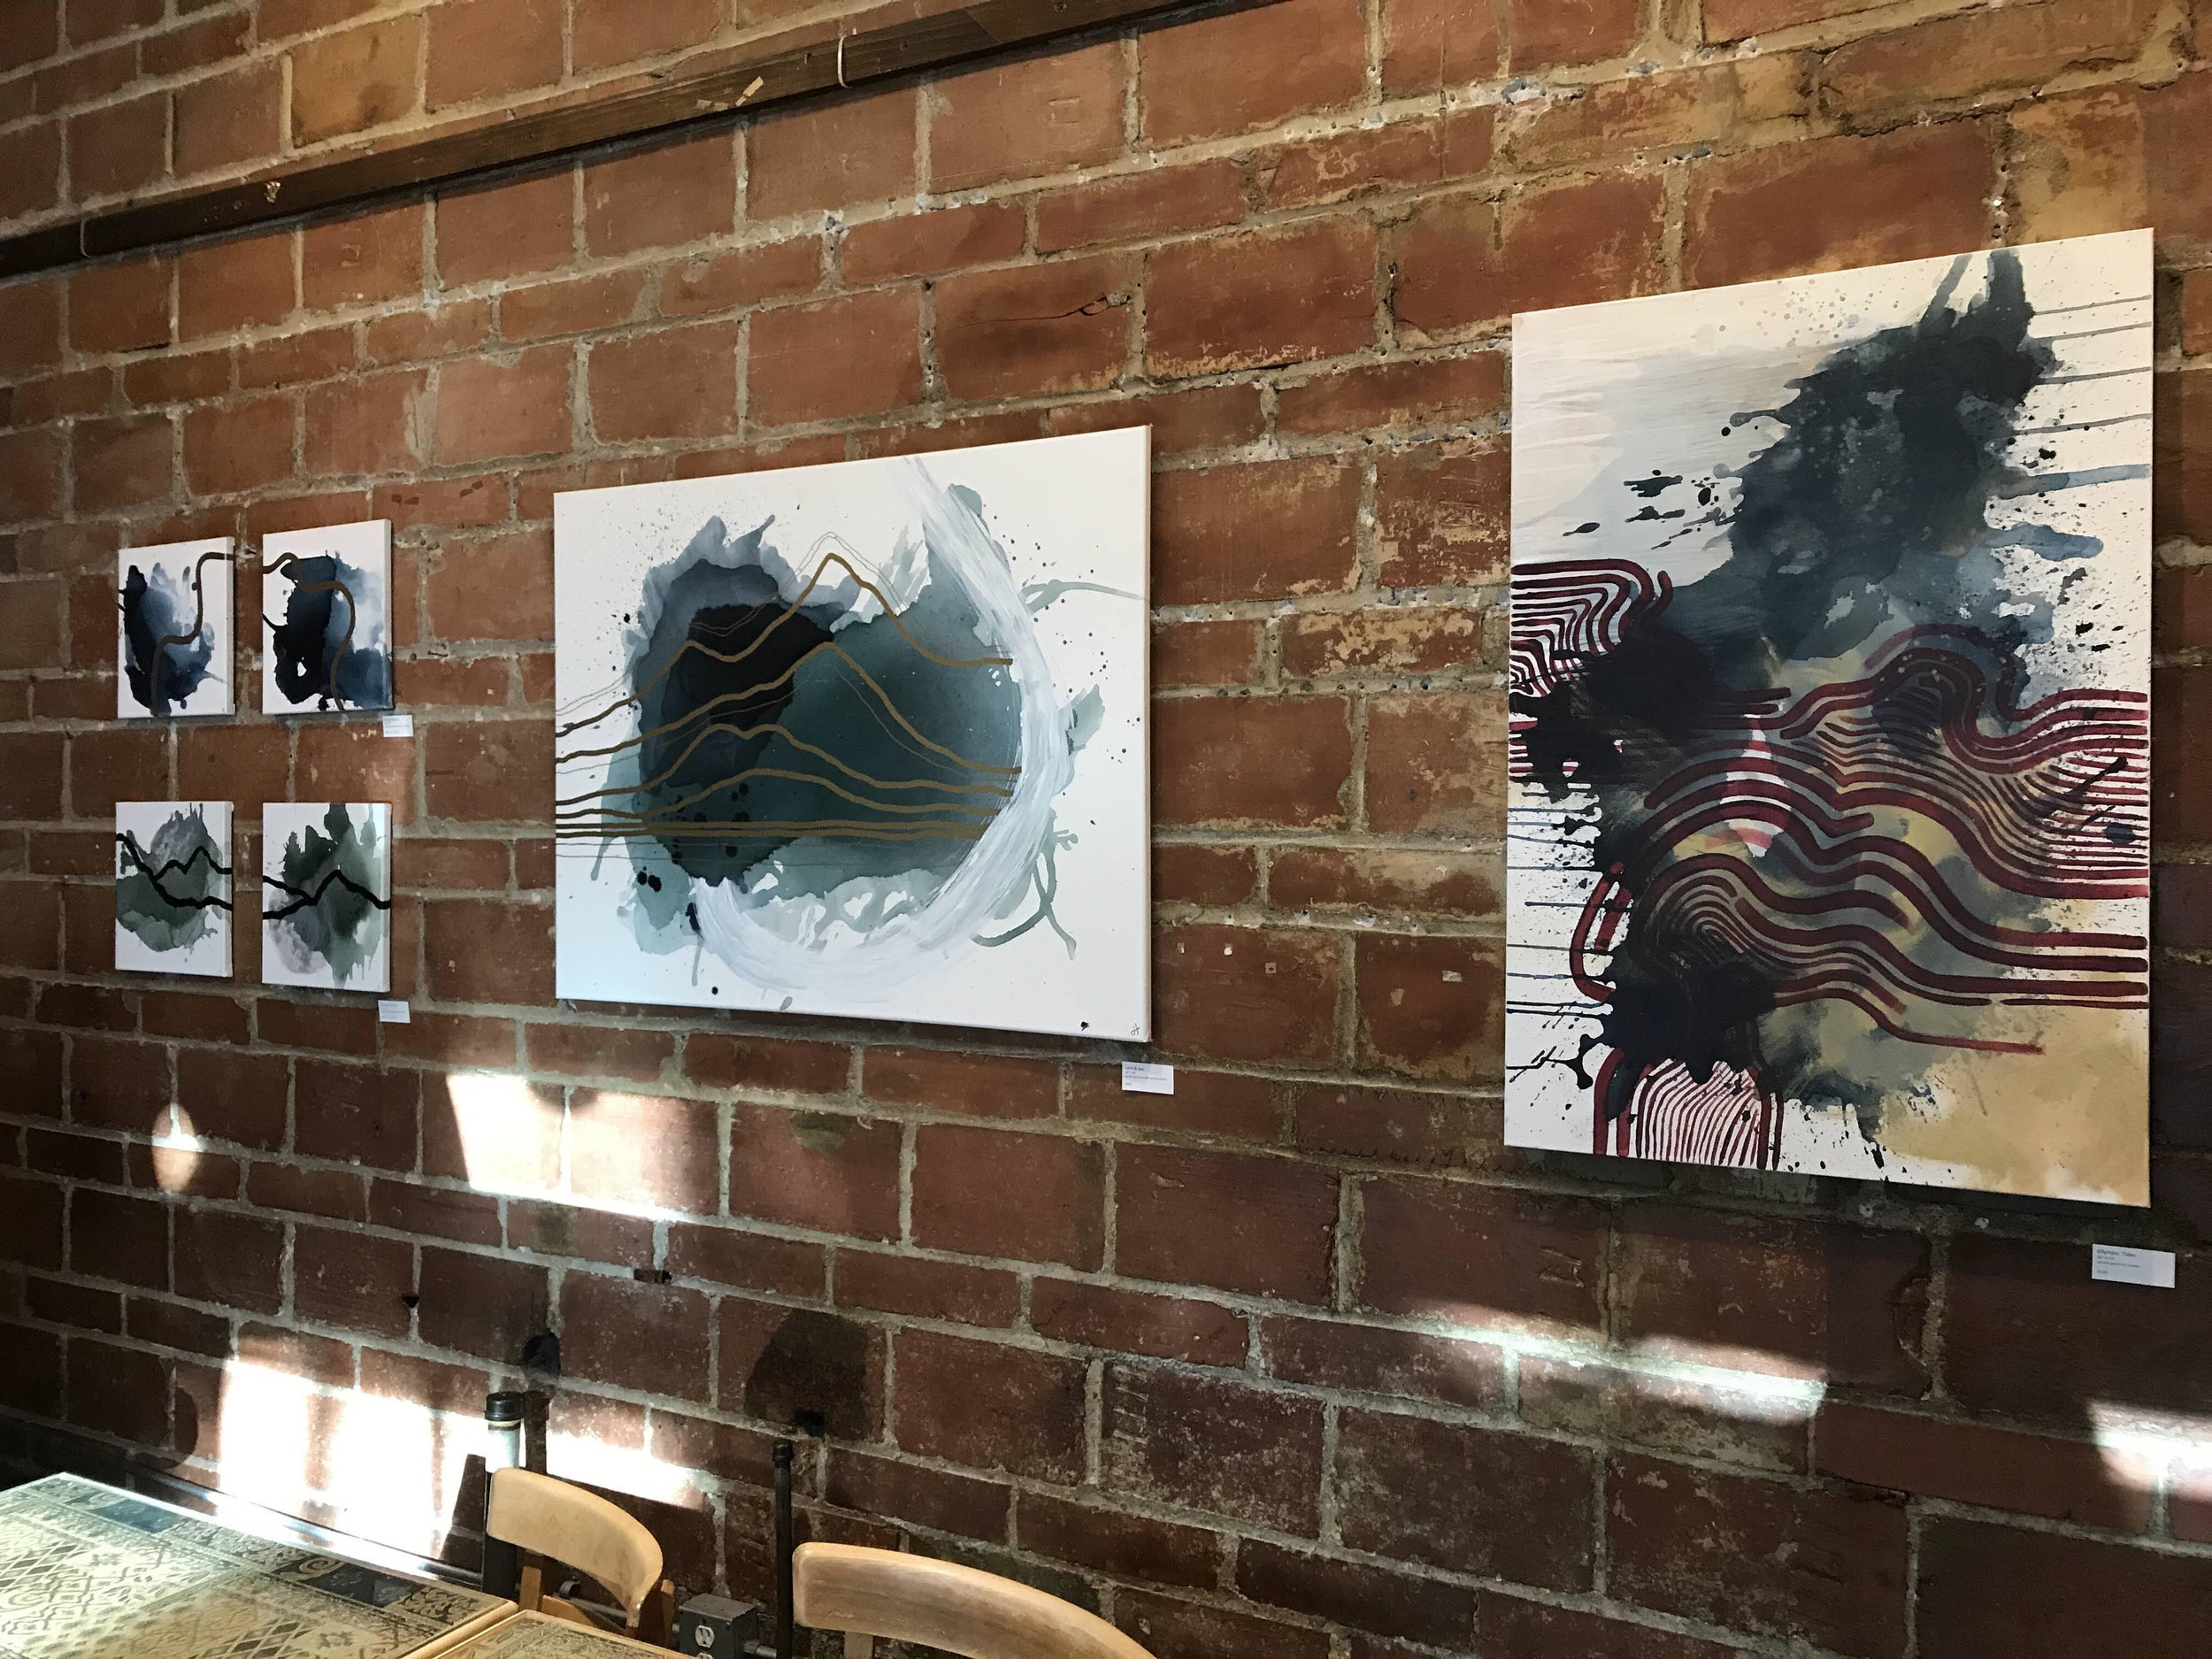 Artwork was on display at Cafe Allegro for the entire month of August. Established in 1975, Cafe Allegro is one of Seattle's oldest espresso bars and one of the country's finest Seattle-style coffee roasters.